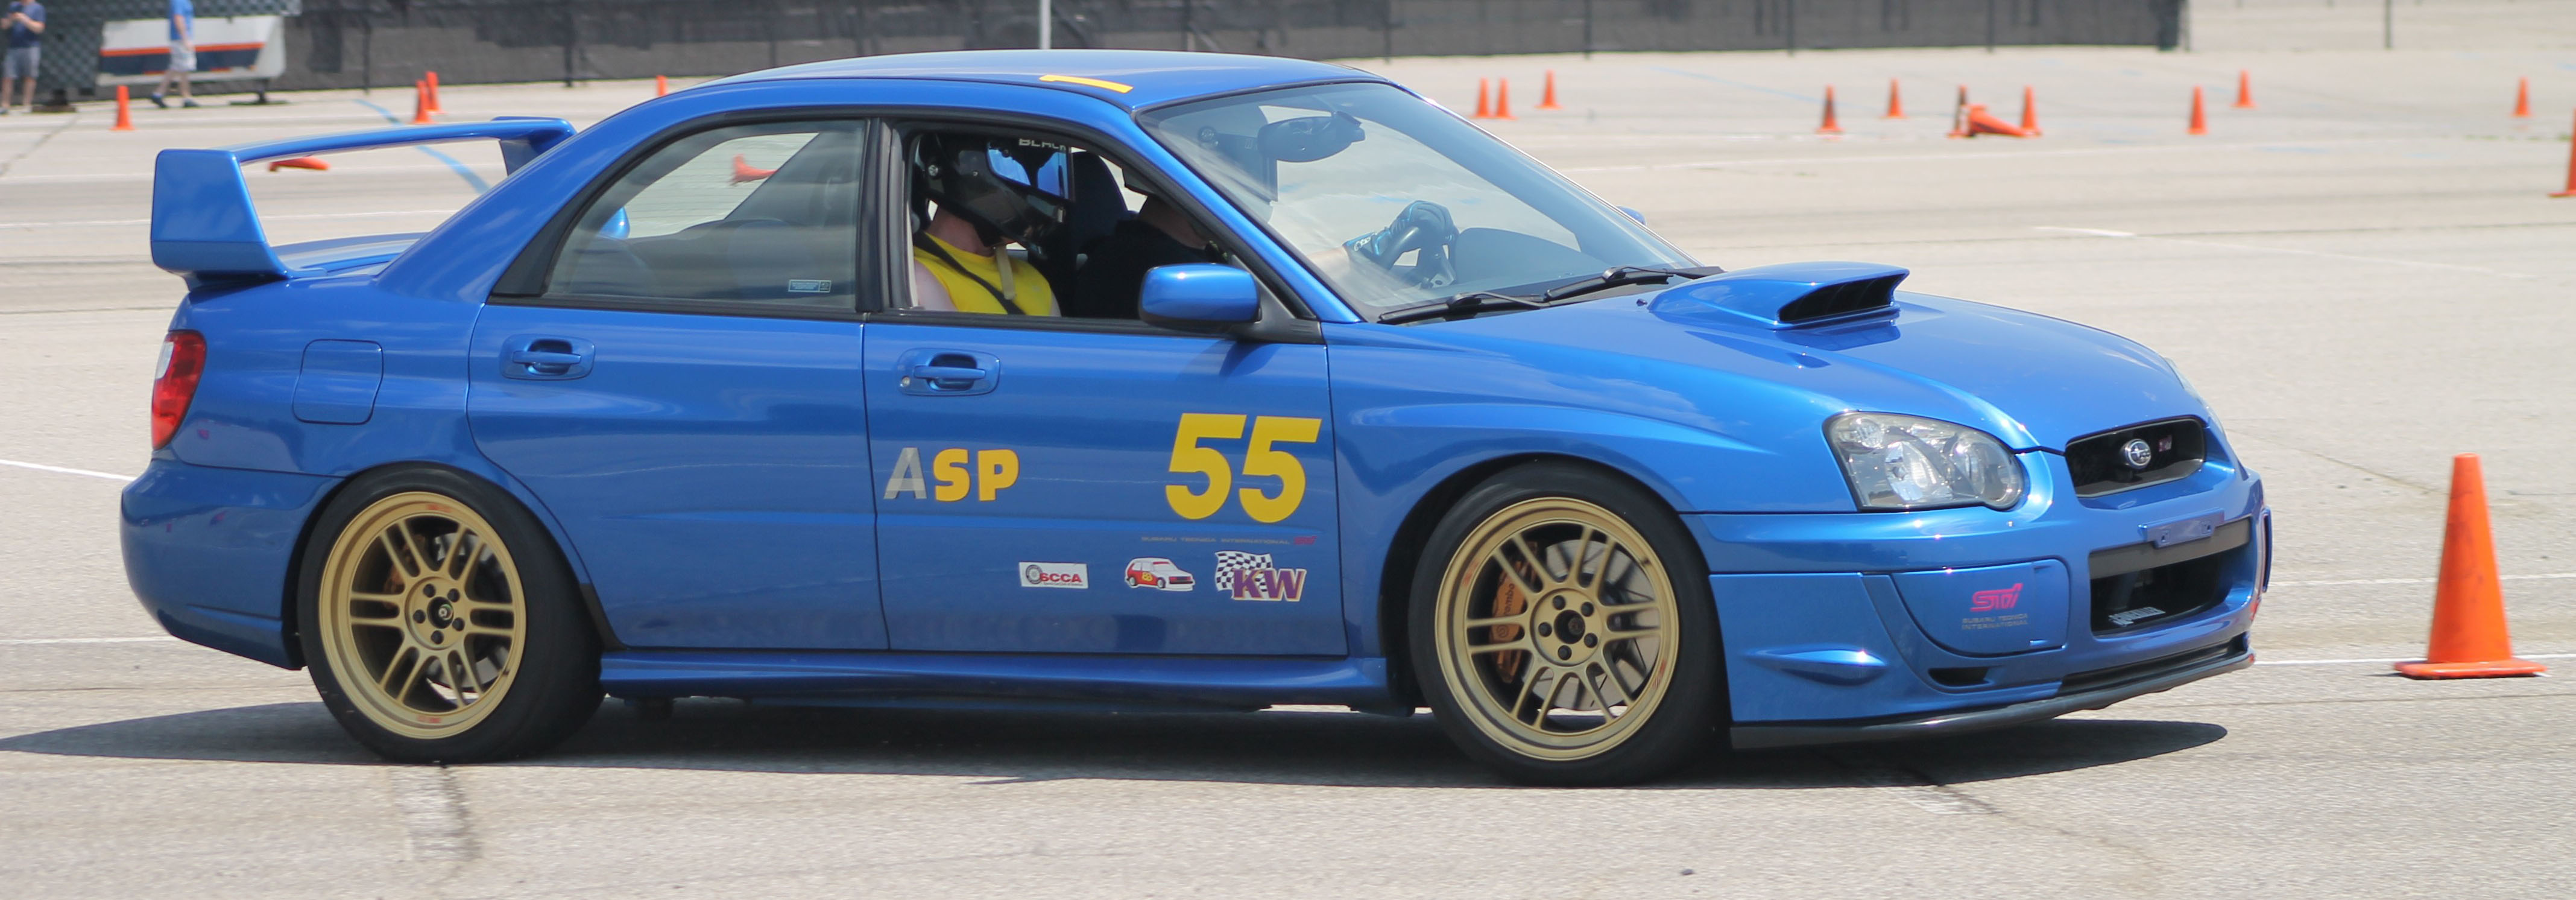 Memorial Day Autocross Results